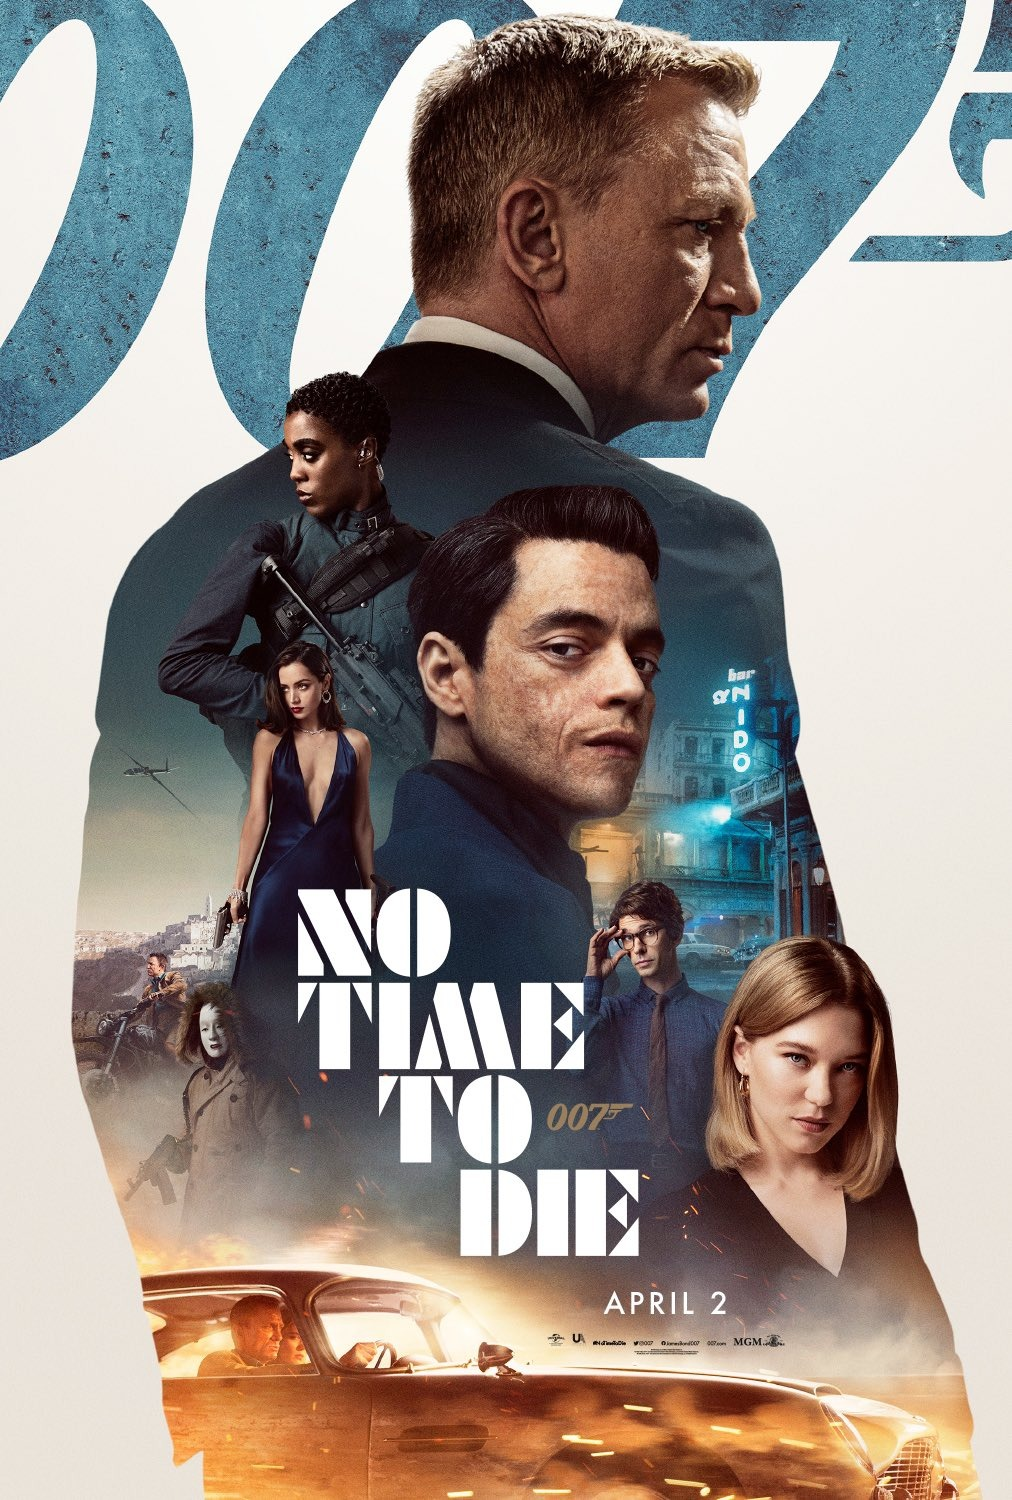 NO TIME TO DIE POSTER (#3 OF 12) - OKAY BHARGAV